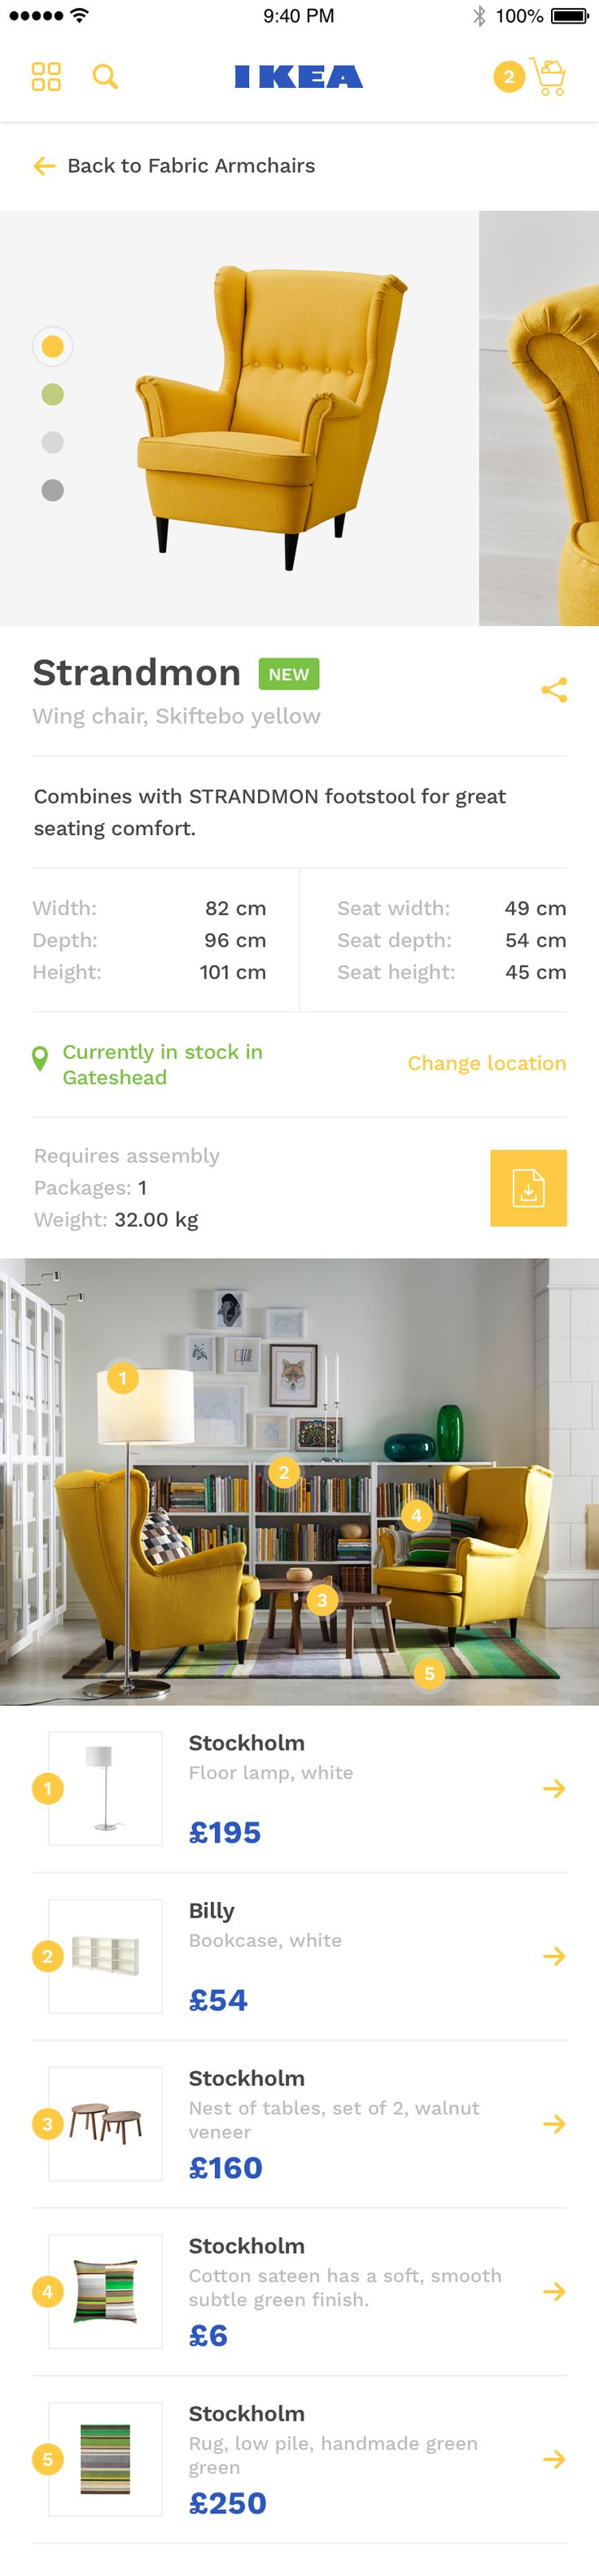 Dribbble - ikea-long.png by Ollie Barker